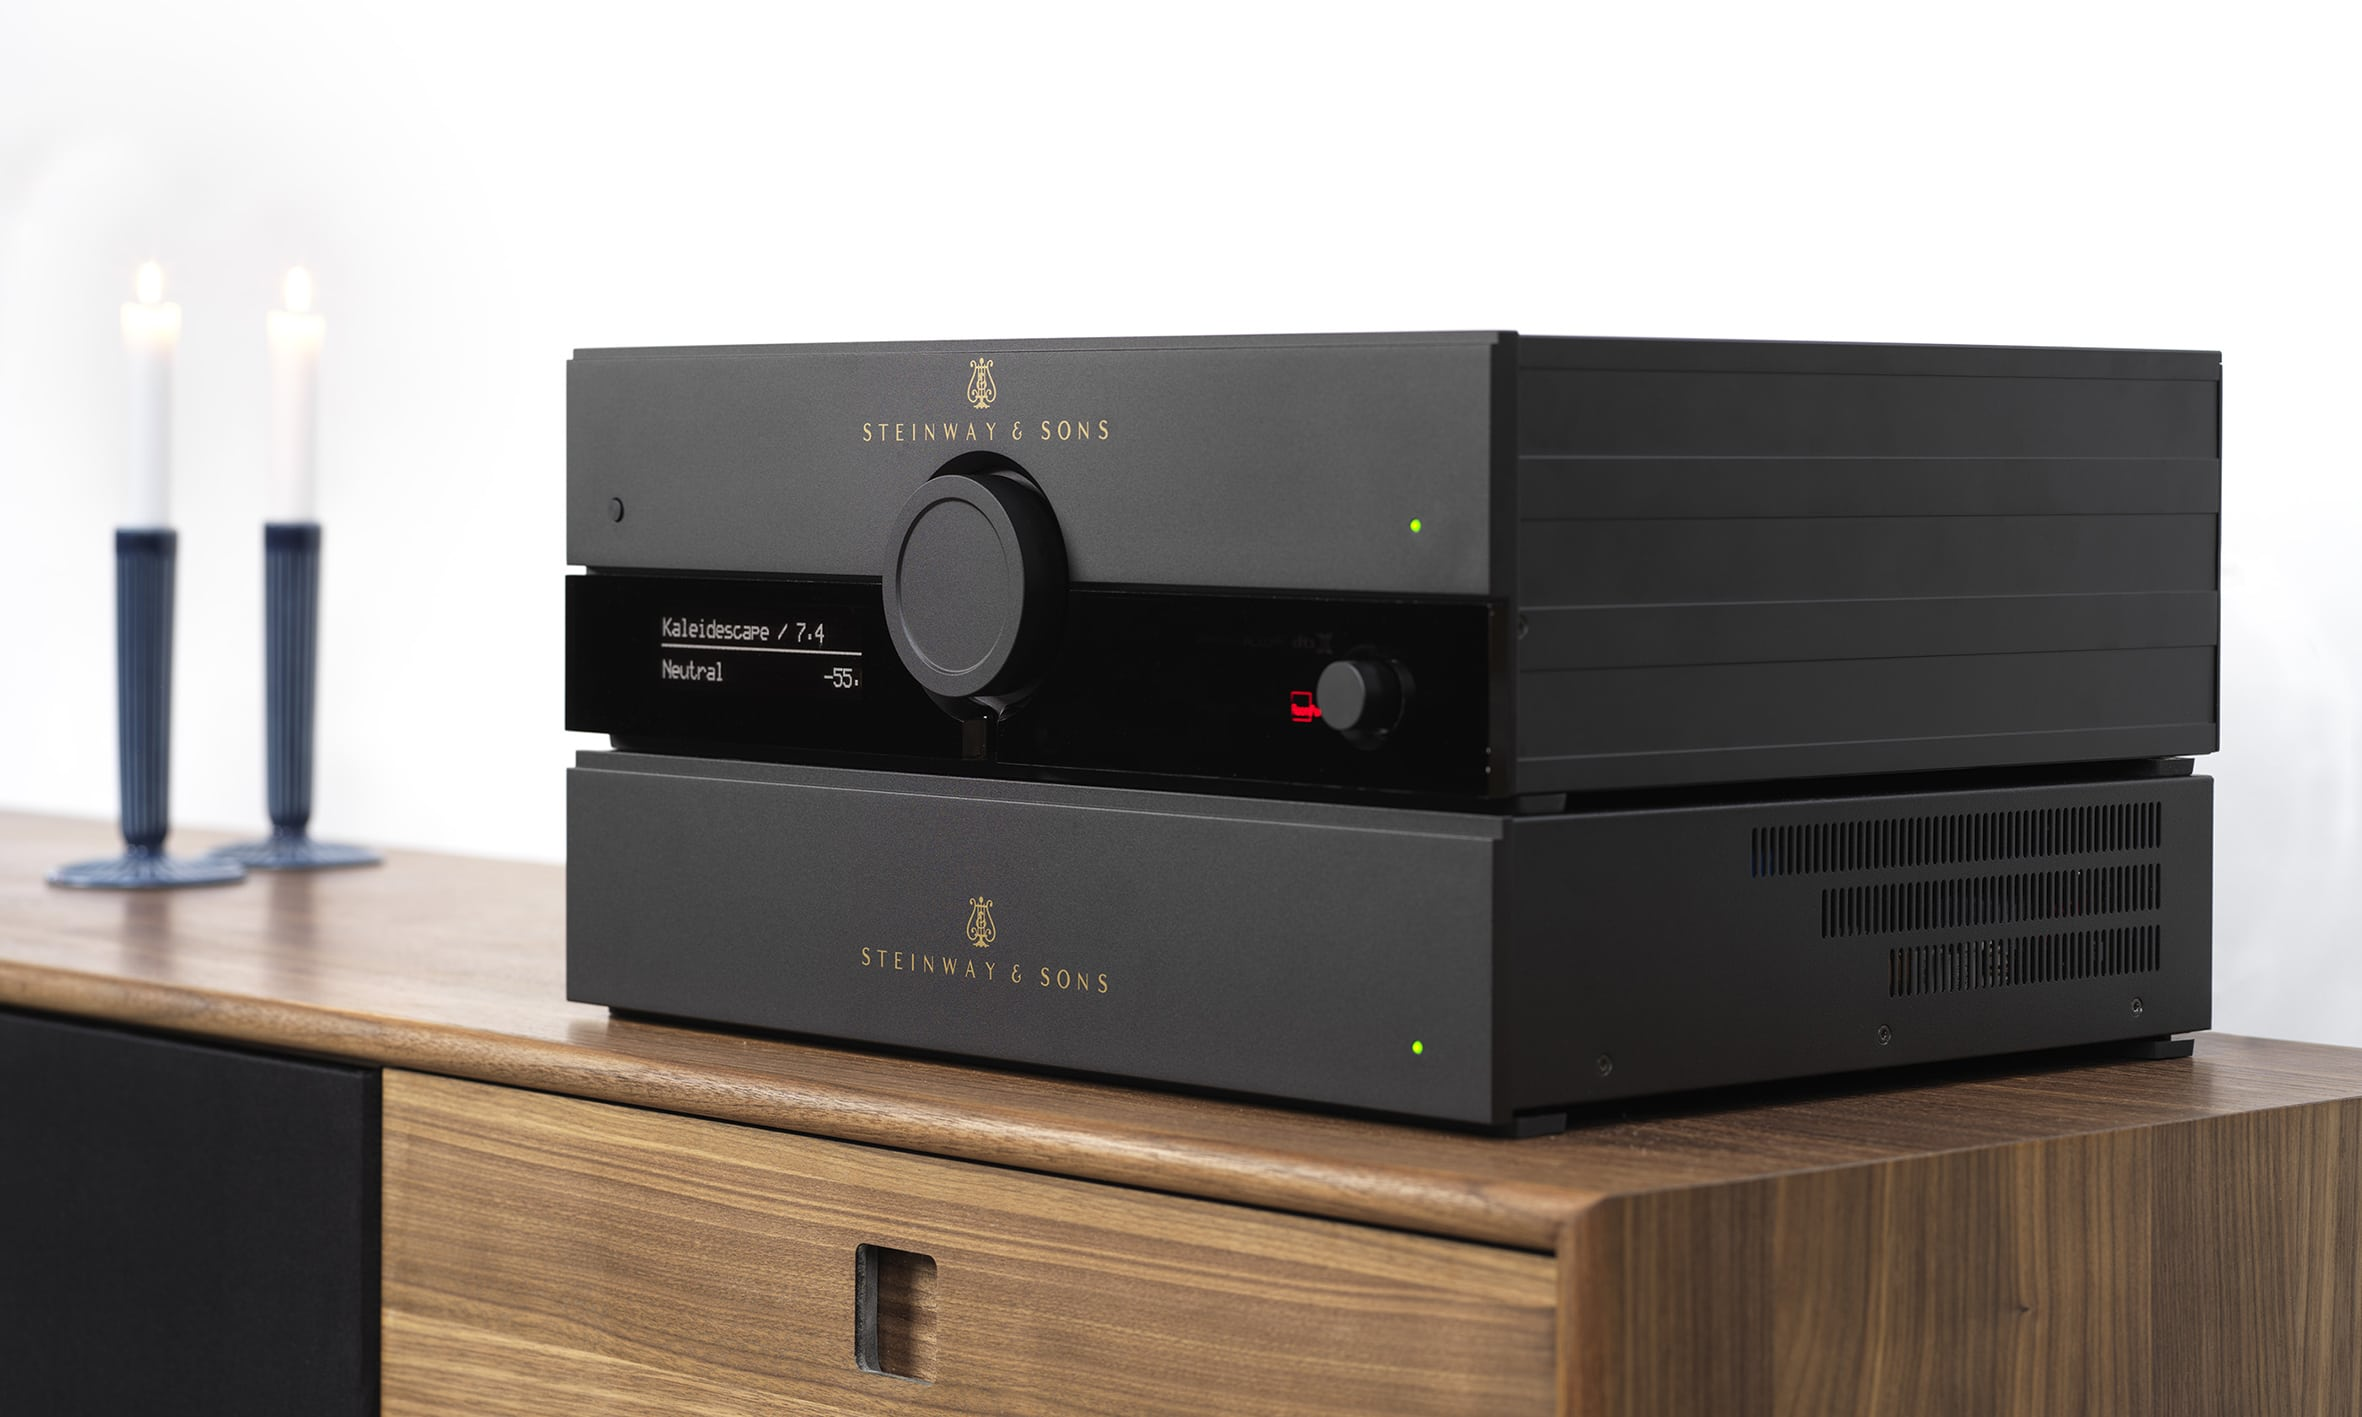 Steinway Lyngdorf's newest processor launches at CEDIA 2019